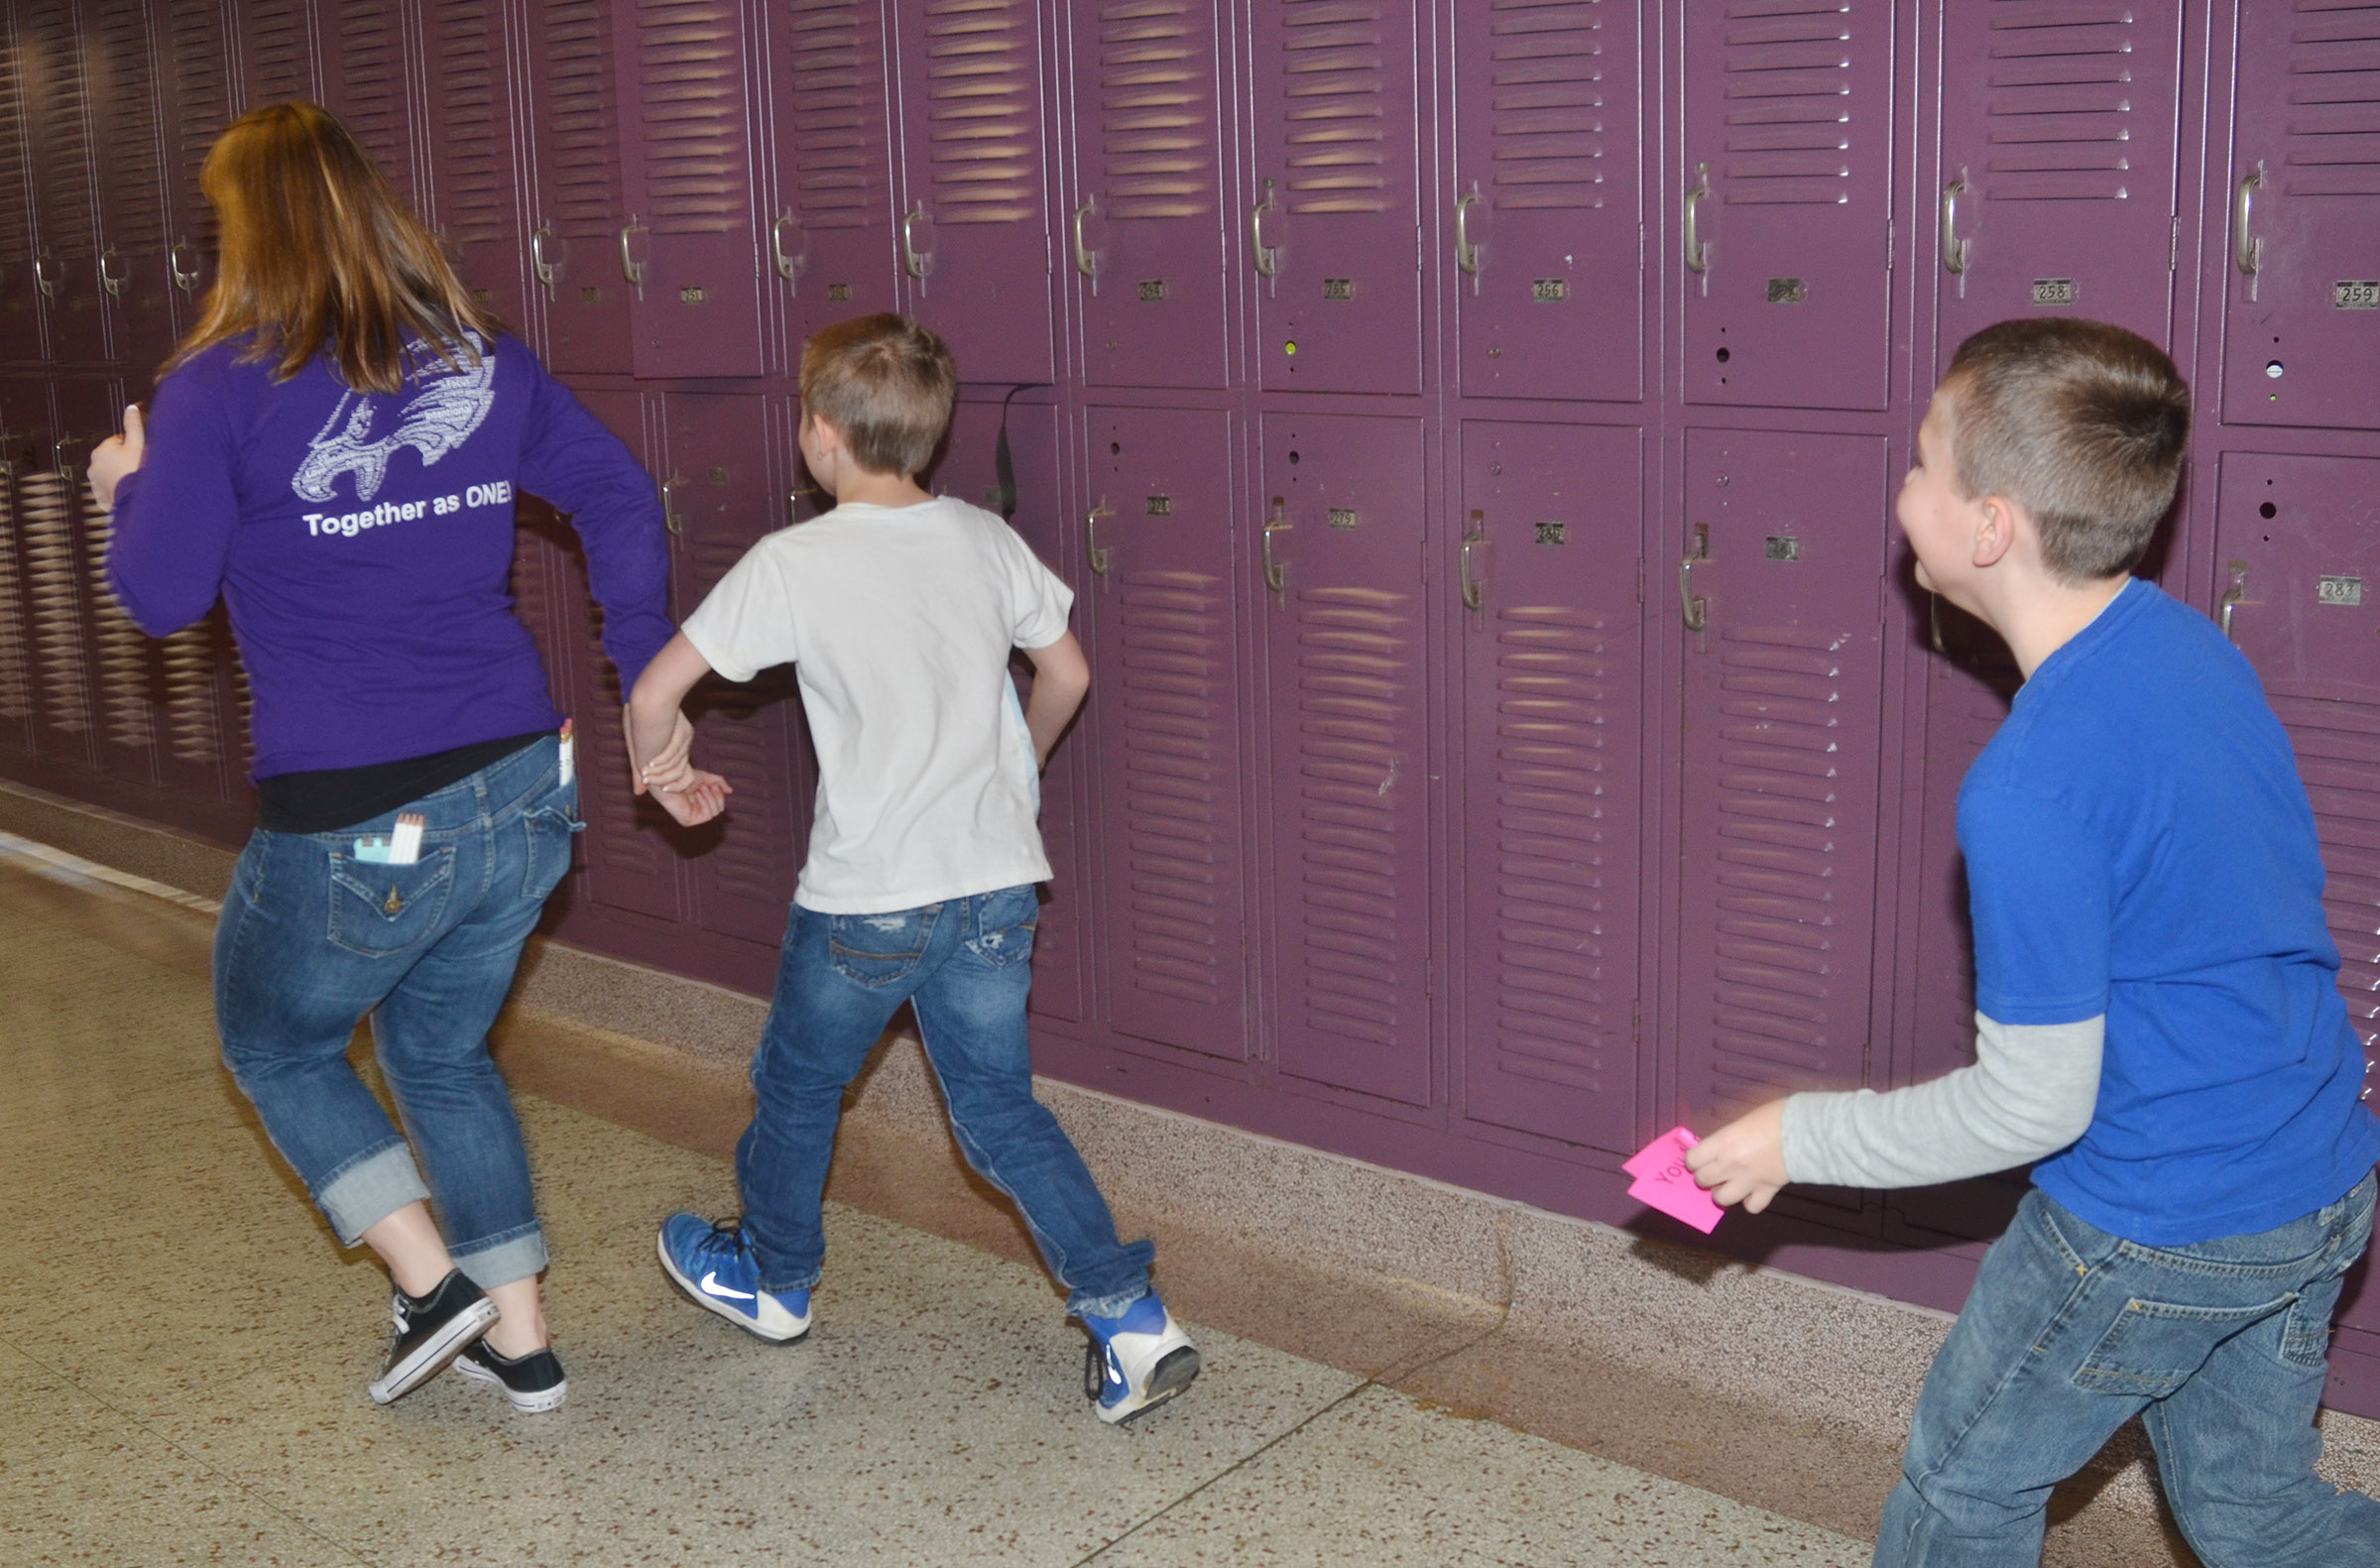 CMS teacher Katie Campbell helps fourth-graders Arthur Singleton, at left, and Michael Abel as they travel the Underground Railroad in their school hallways to freedom.